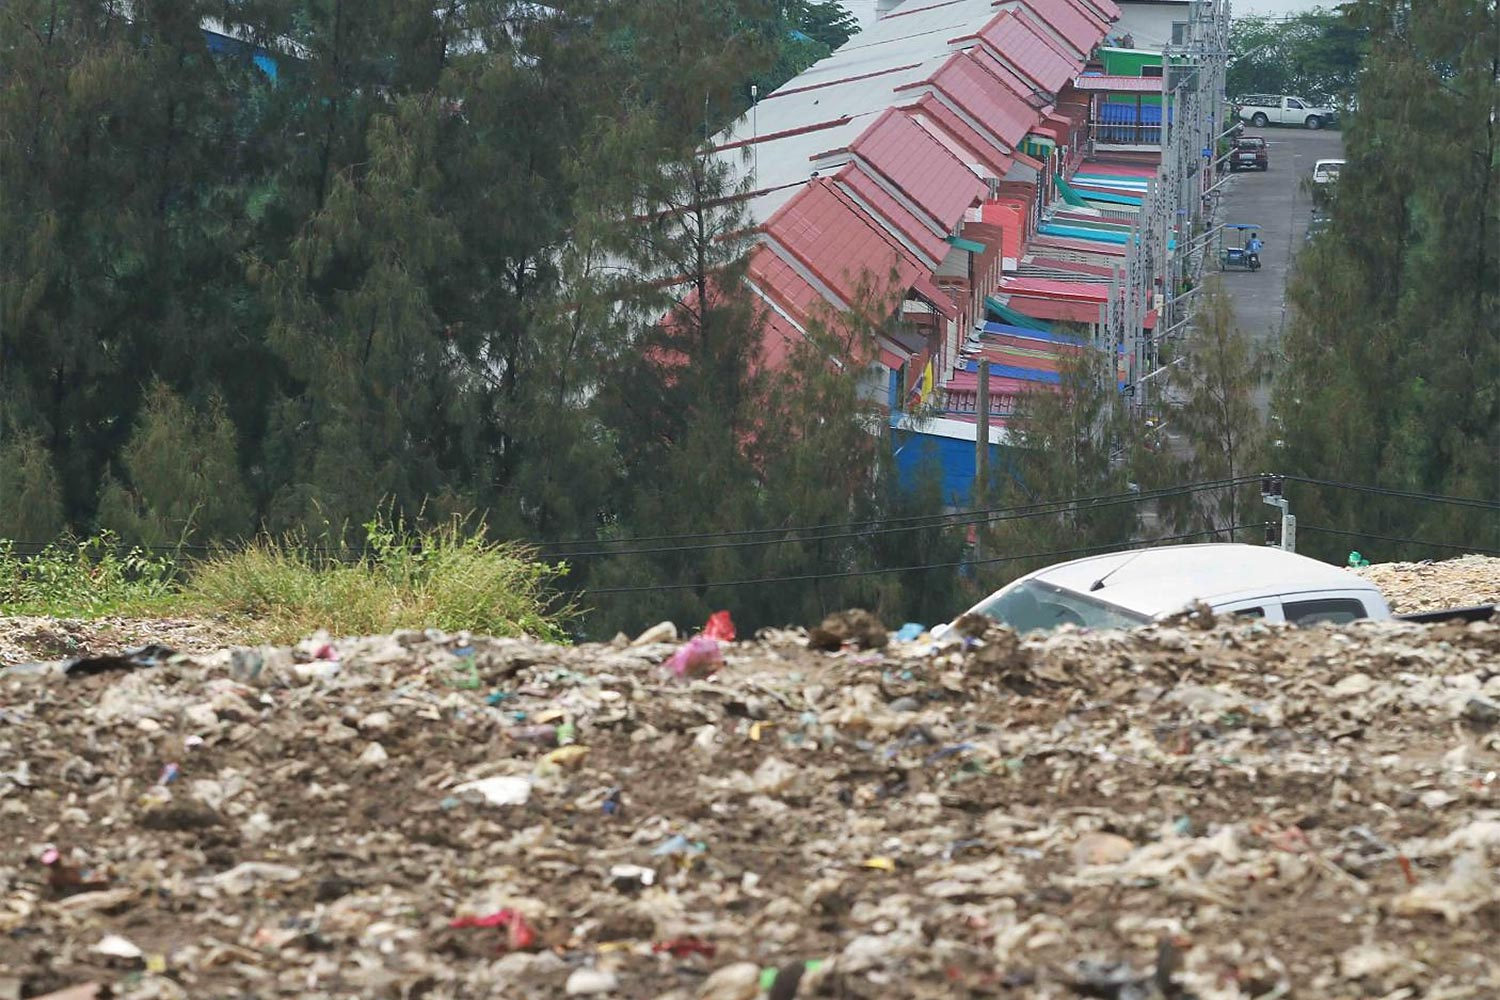 A landfill in Praeksa subdistrict in Samut Prakan's Muang district clearly indicates the ongoing waste management problems.